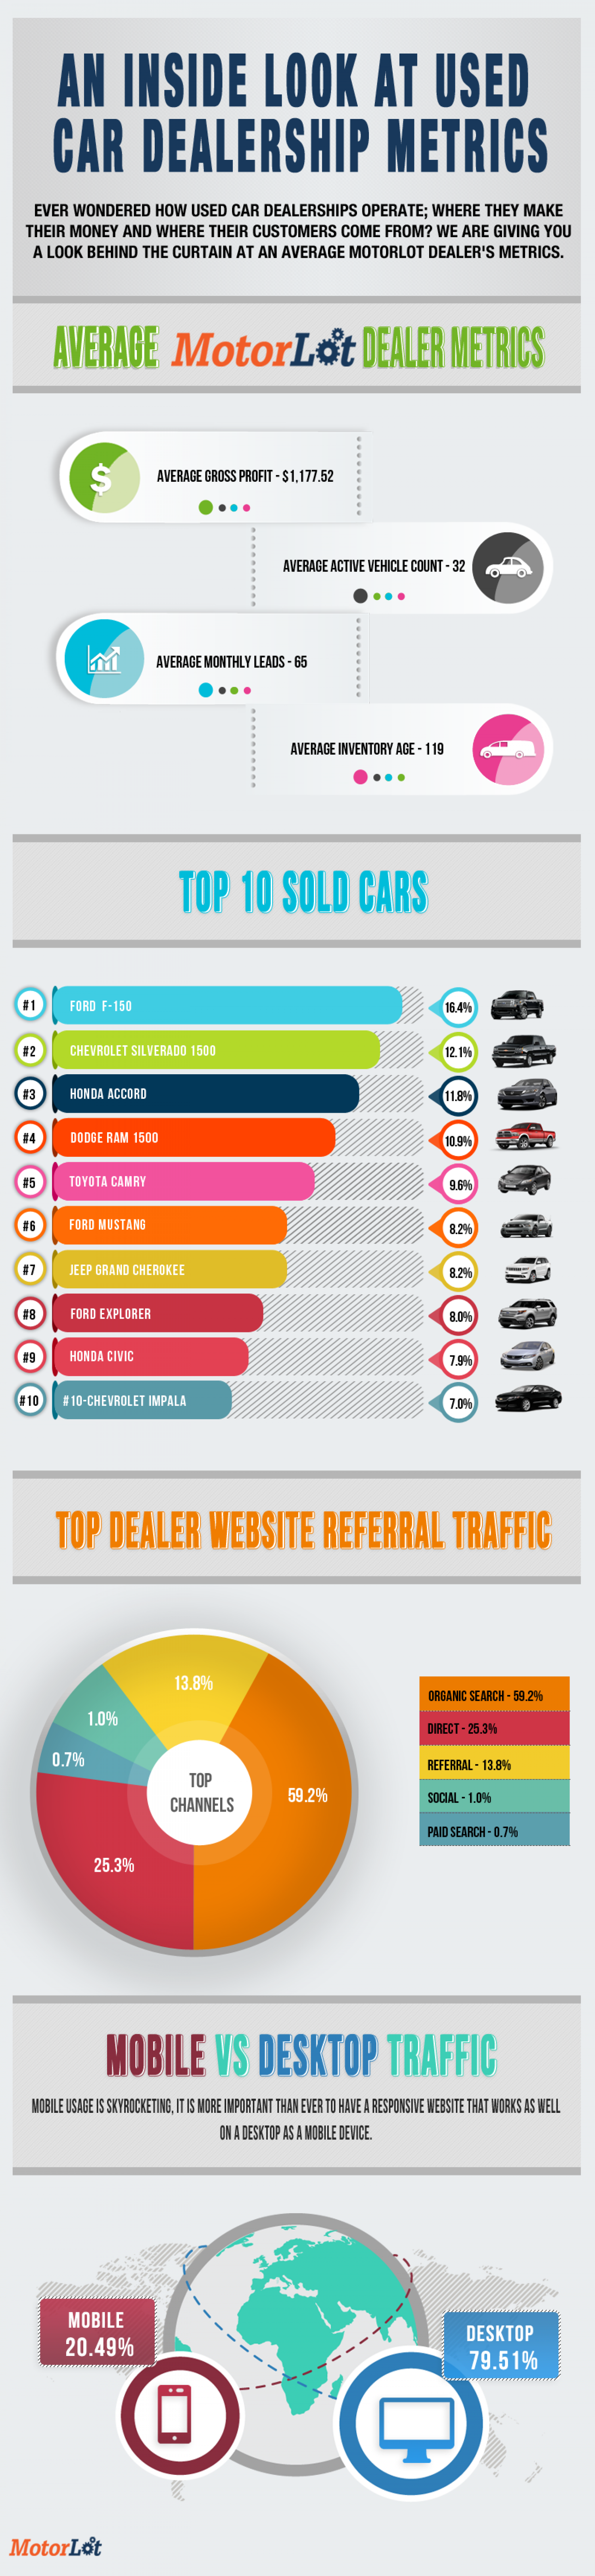 An inside Look at Used Car Dealership Metrics Infographic